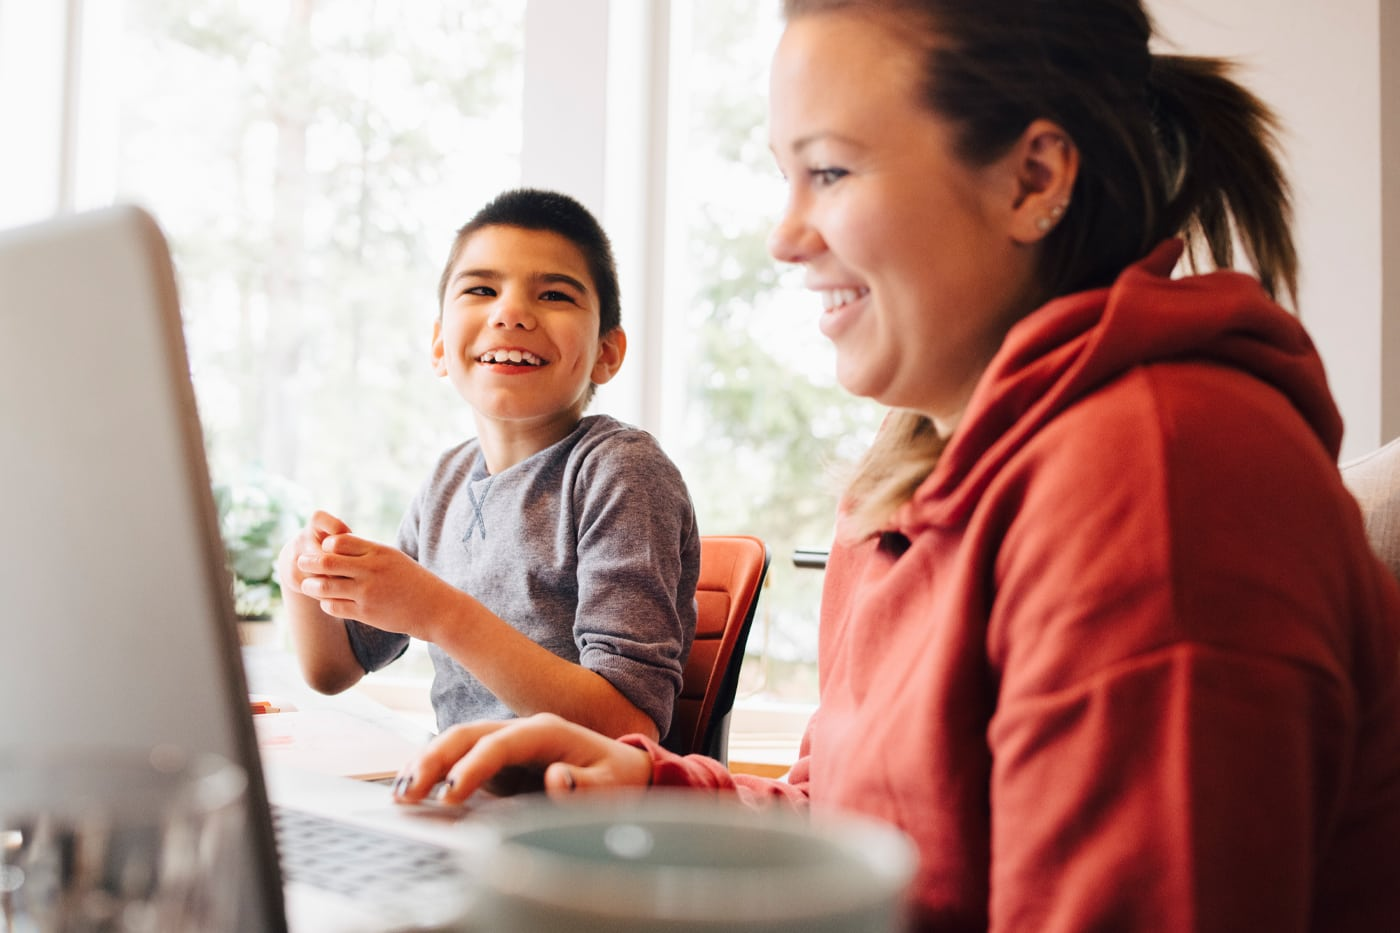 Mom with autistic son sitting in front of computer